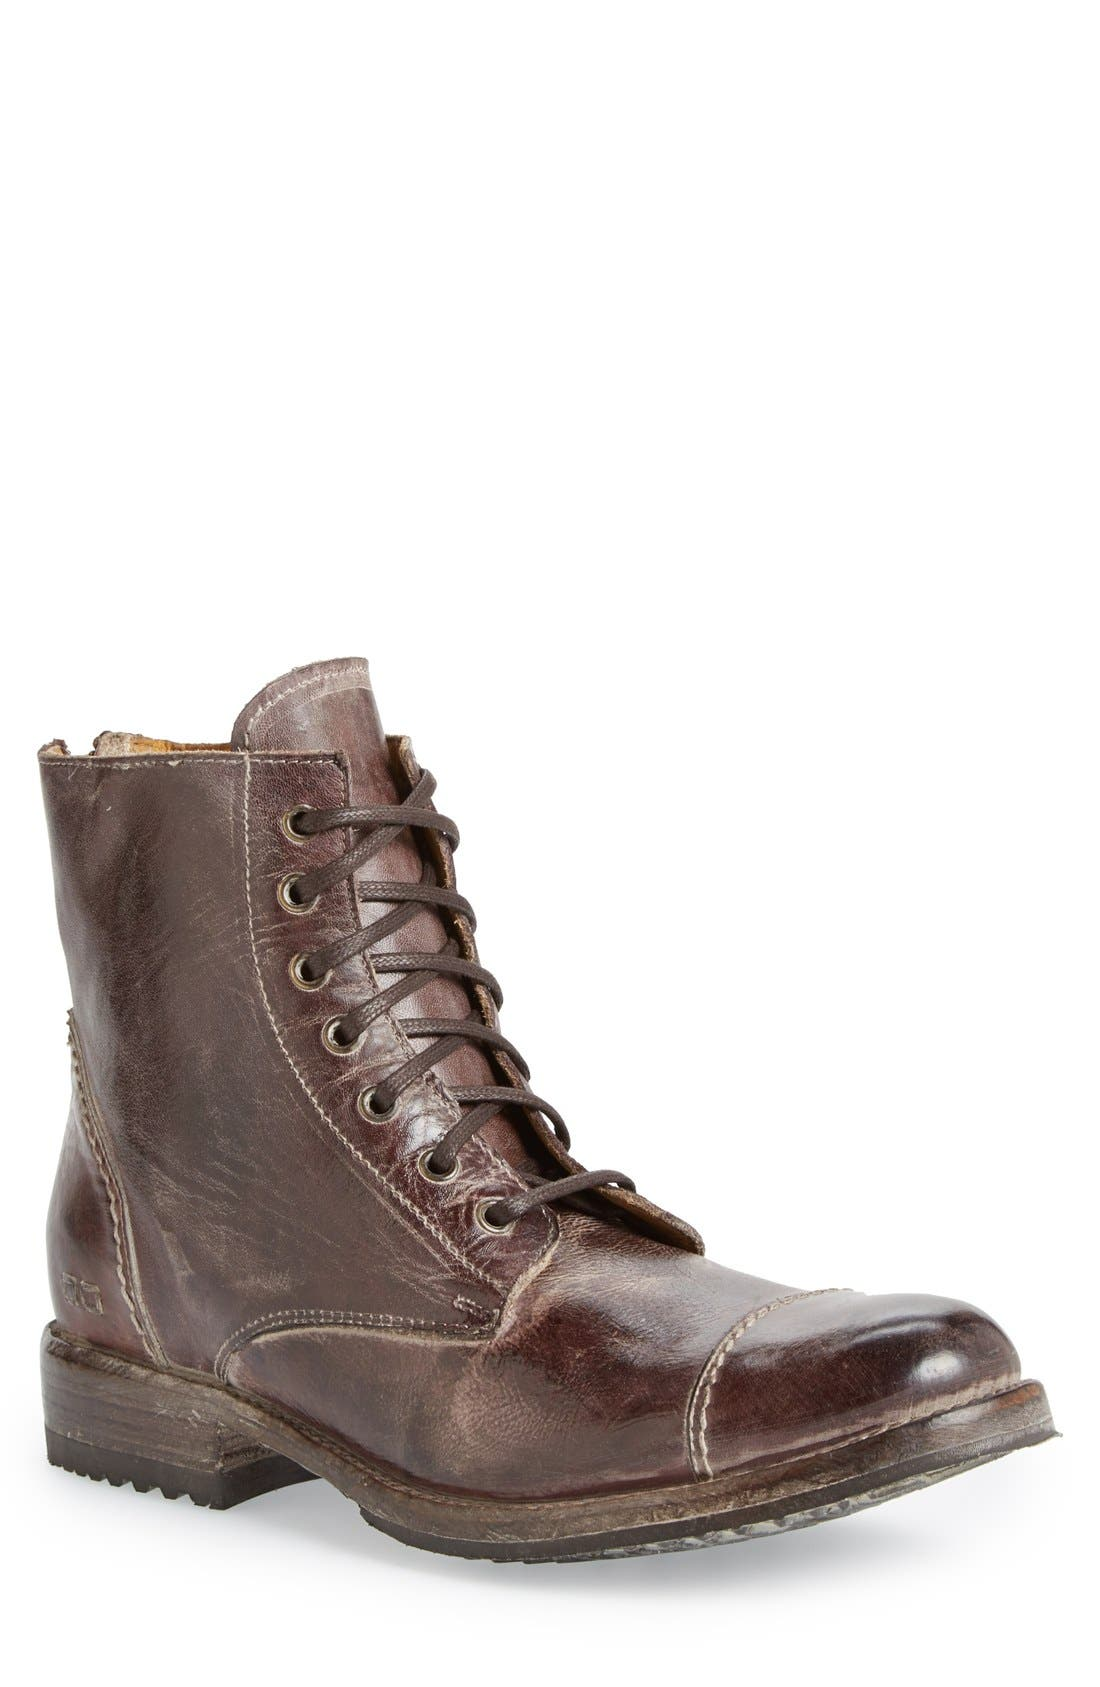 Alternate Image 1 Selected - Bed Stu 'Protégé' Cap Toe Boot (Men)